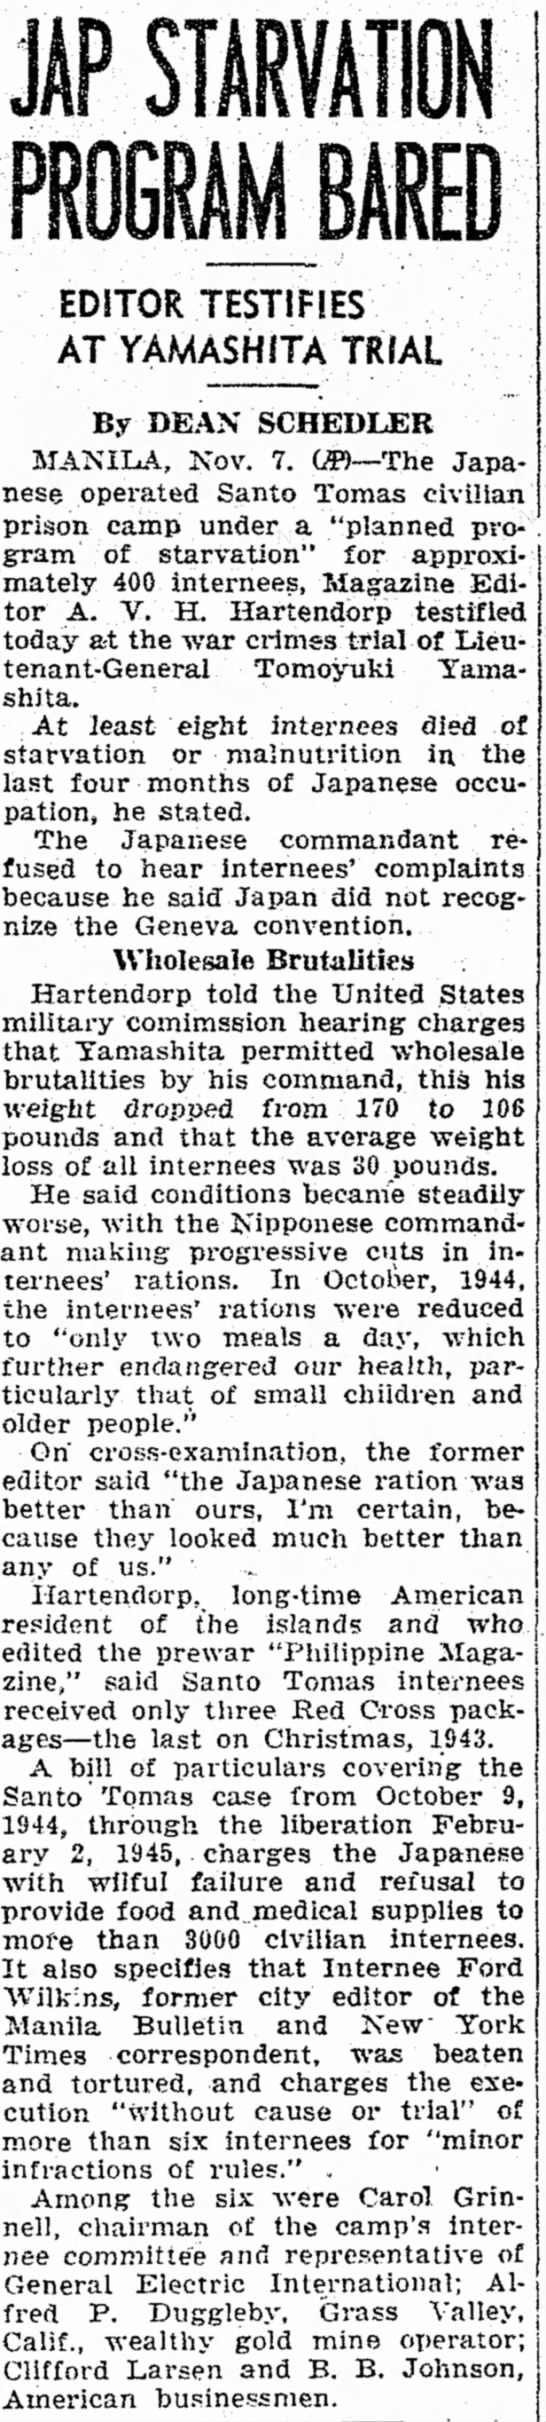 7 nov 1945 article on war crimes trial of Yamashita in Manila -